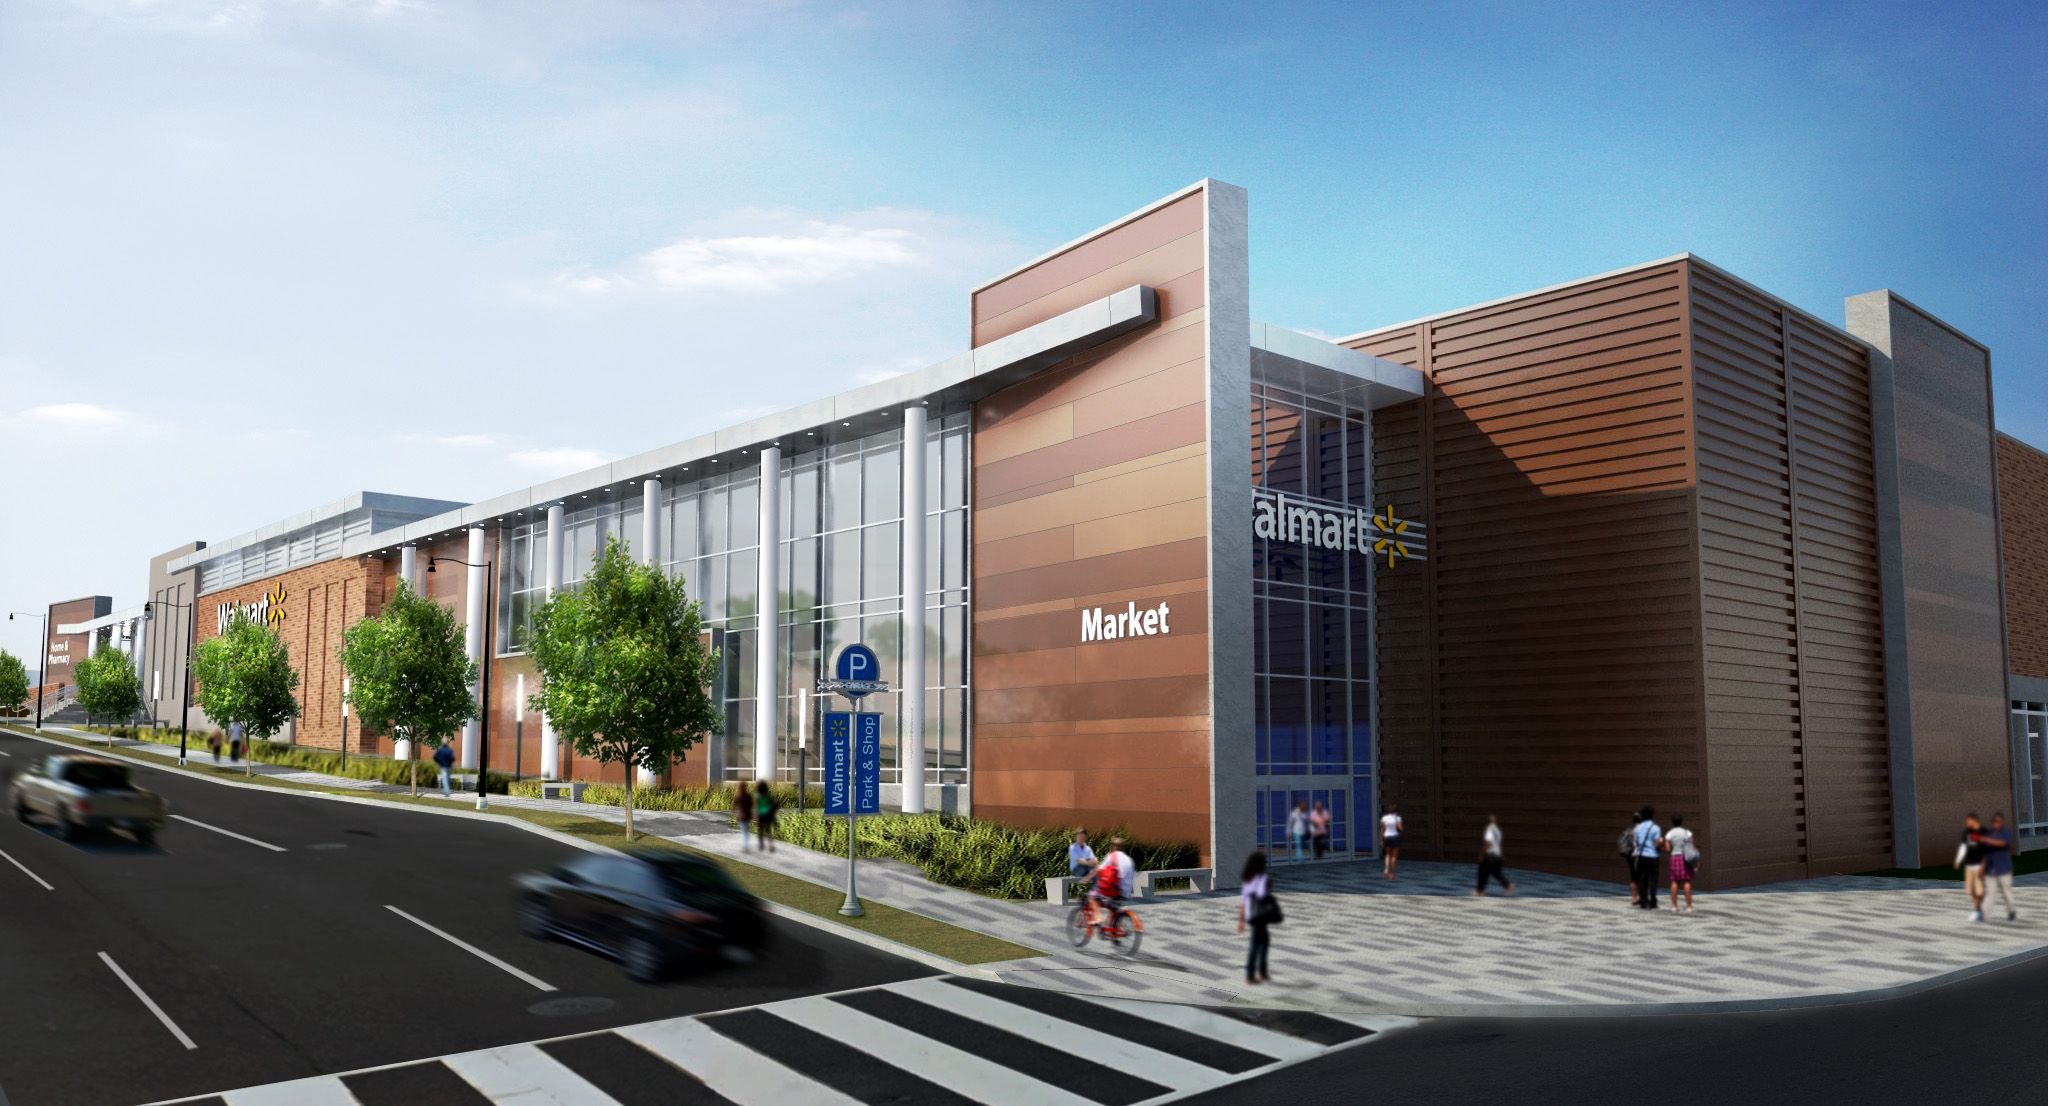 Walmart east capital street washington dc mma for Modern retail building design